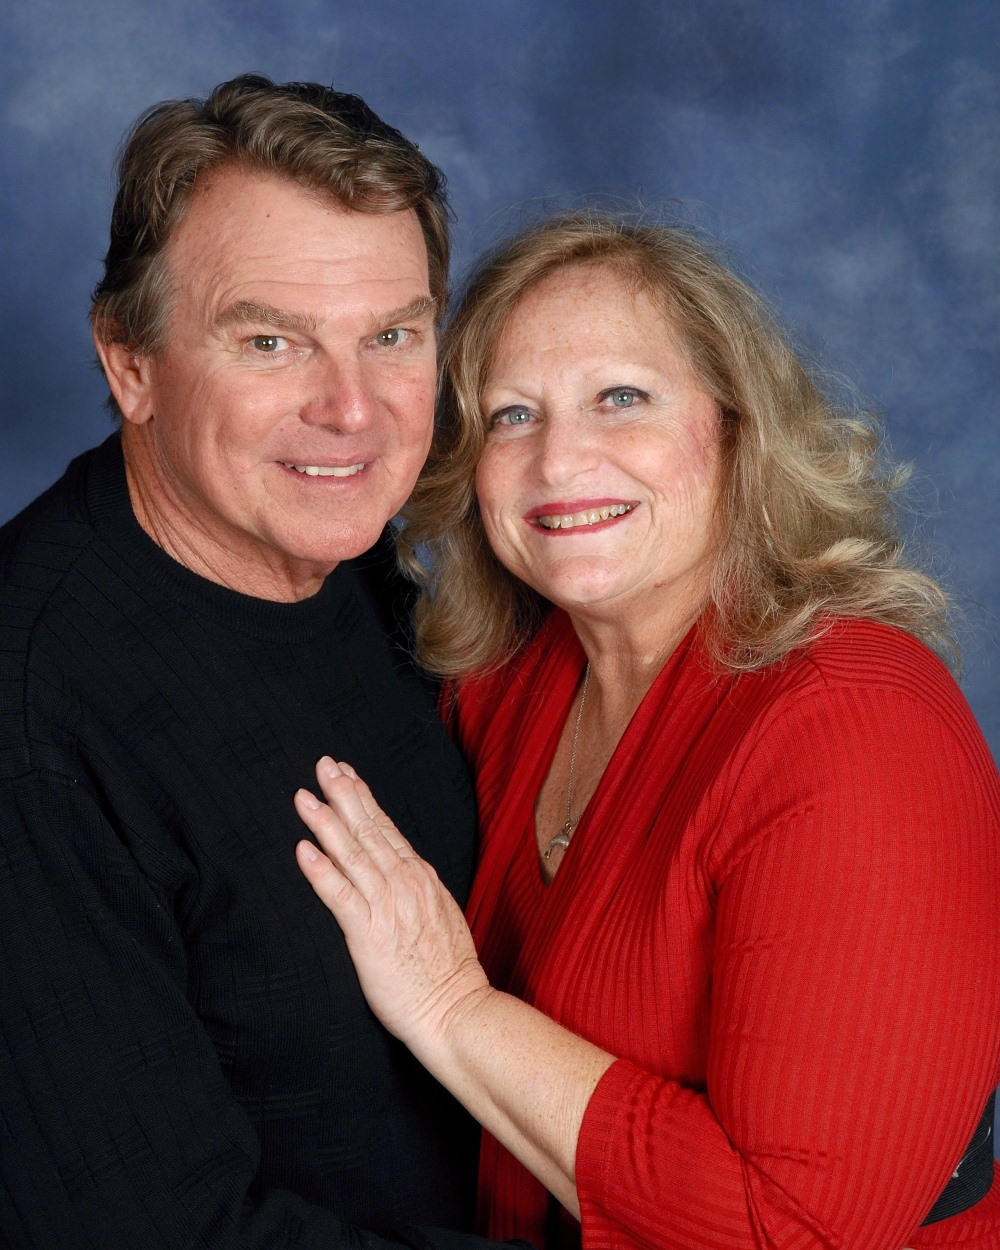 Pastors John and Sue Marks